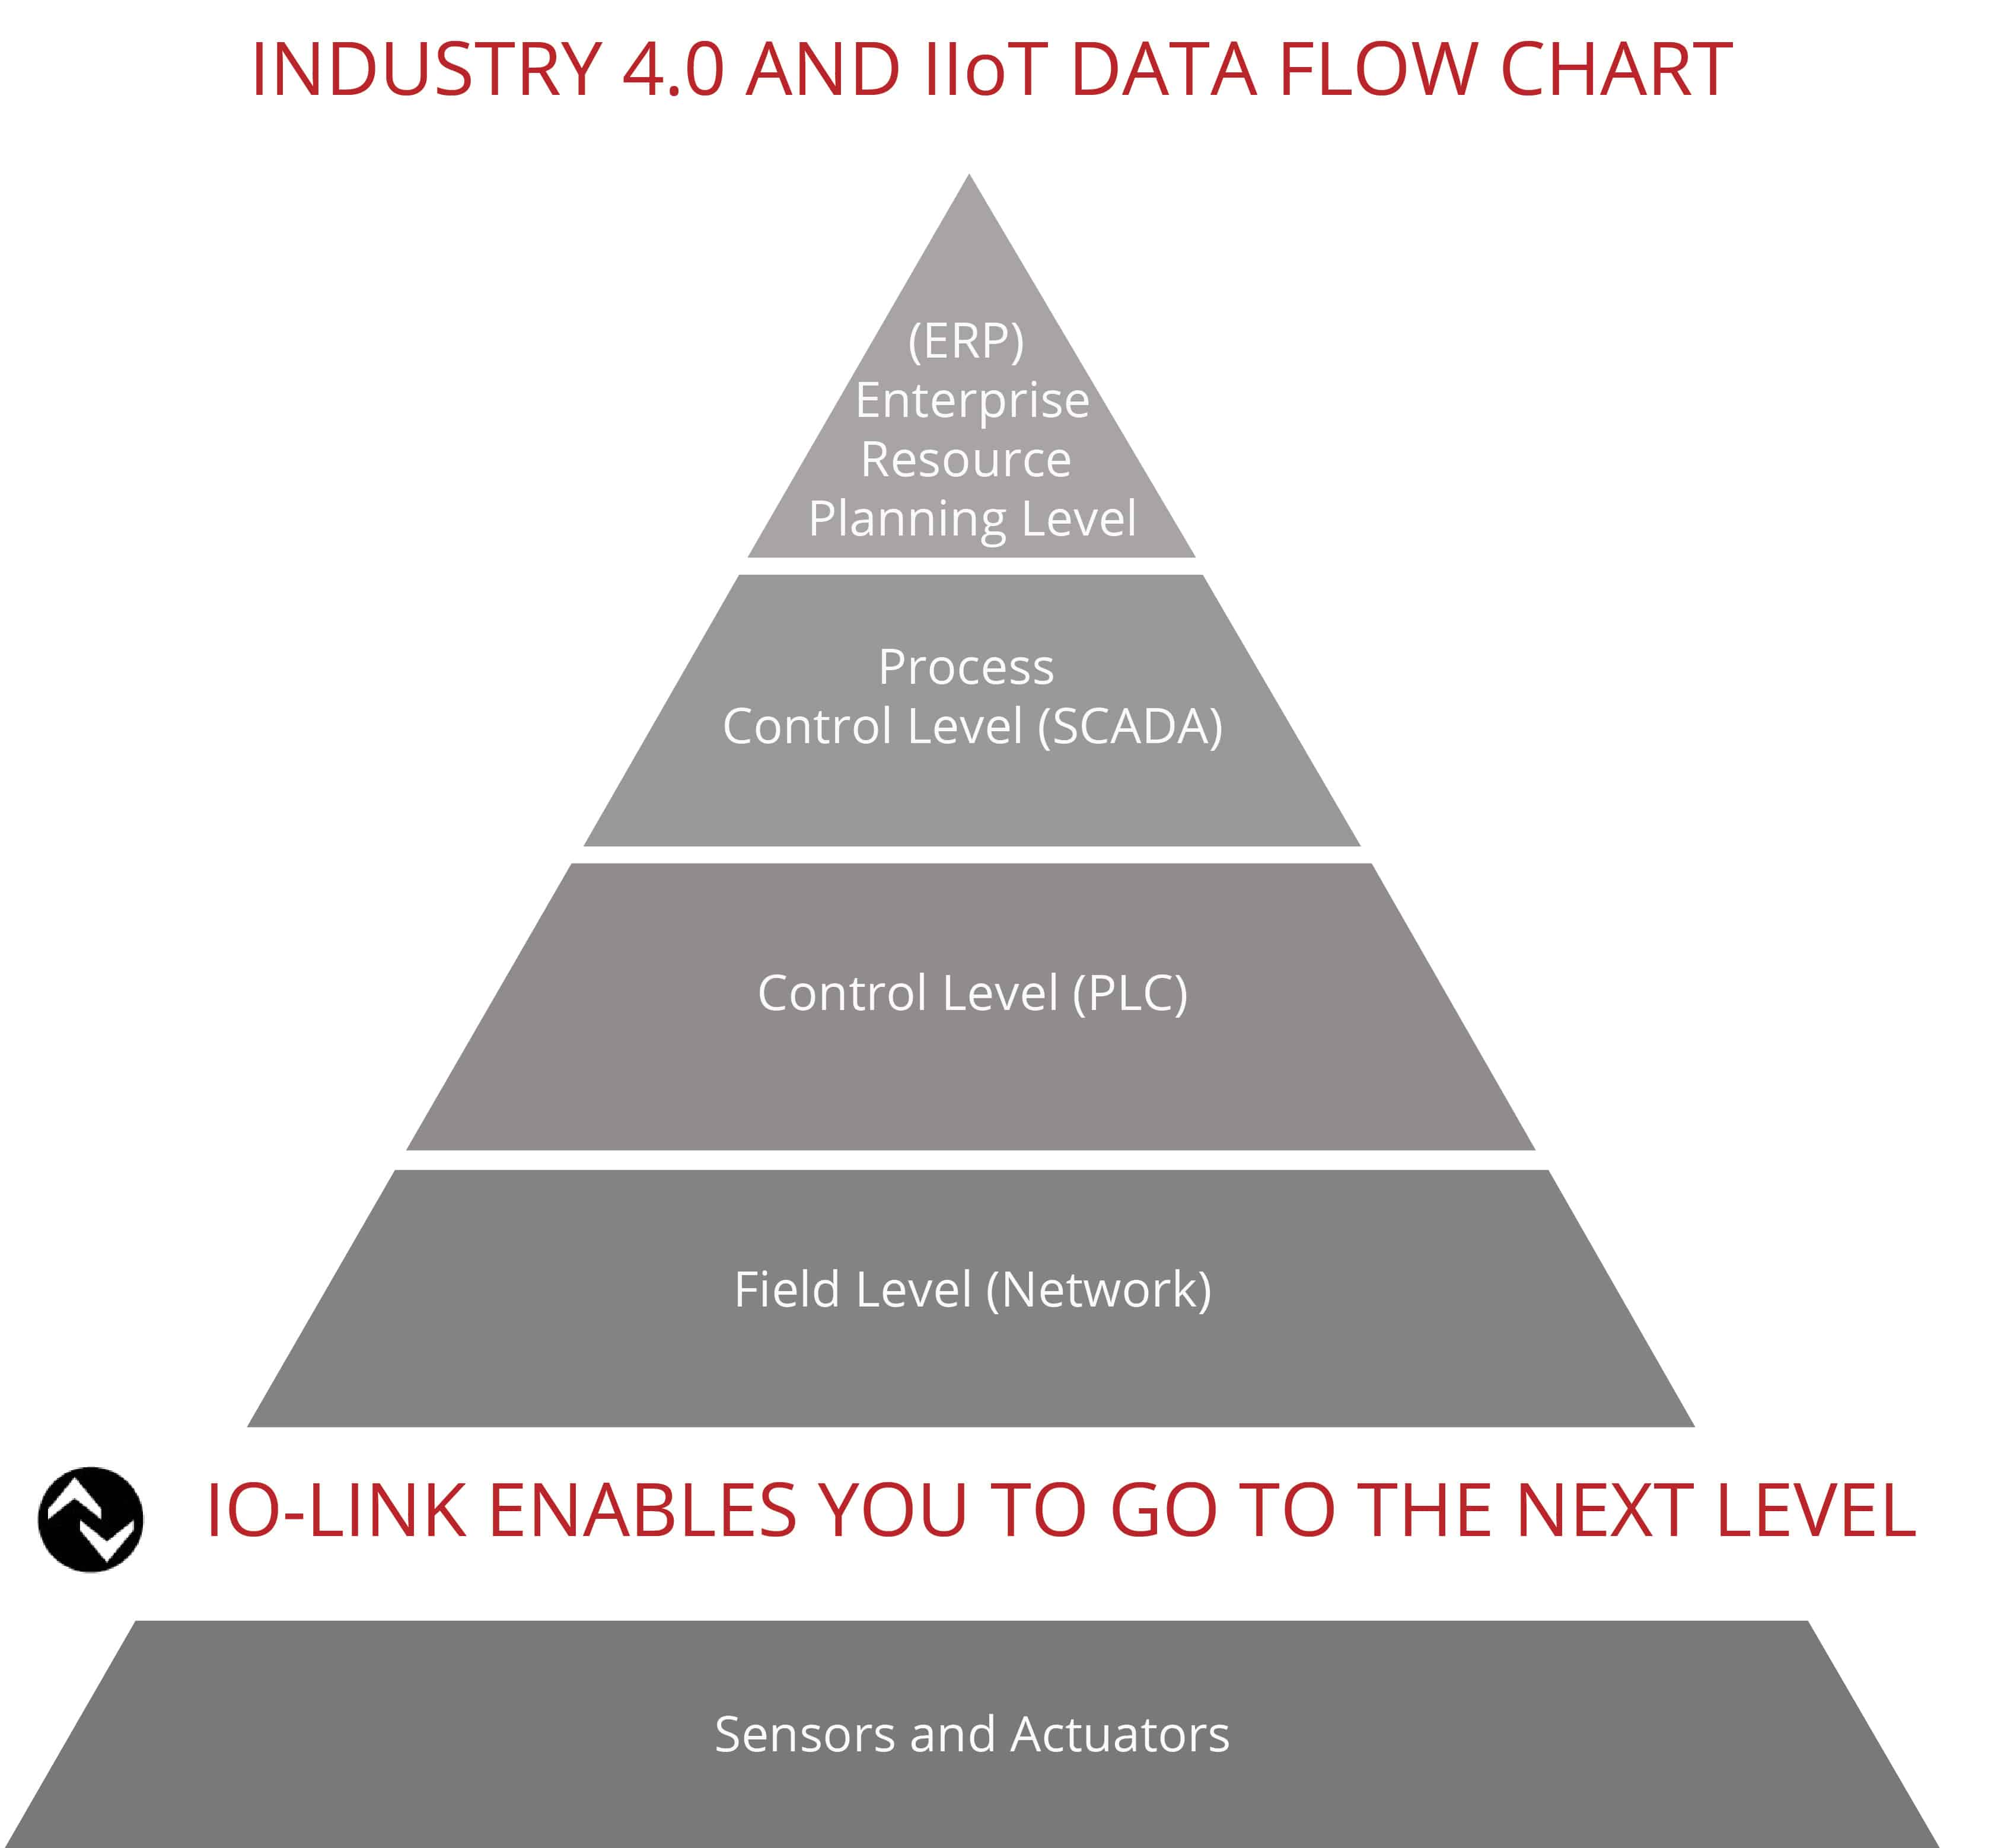 Industrie 4.0 Flow Chart grey web1 - IO-Link Masters Enable Industry 4.0 and IIoT